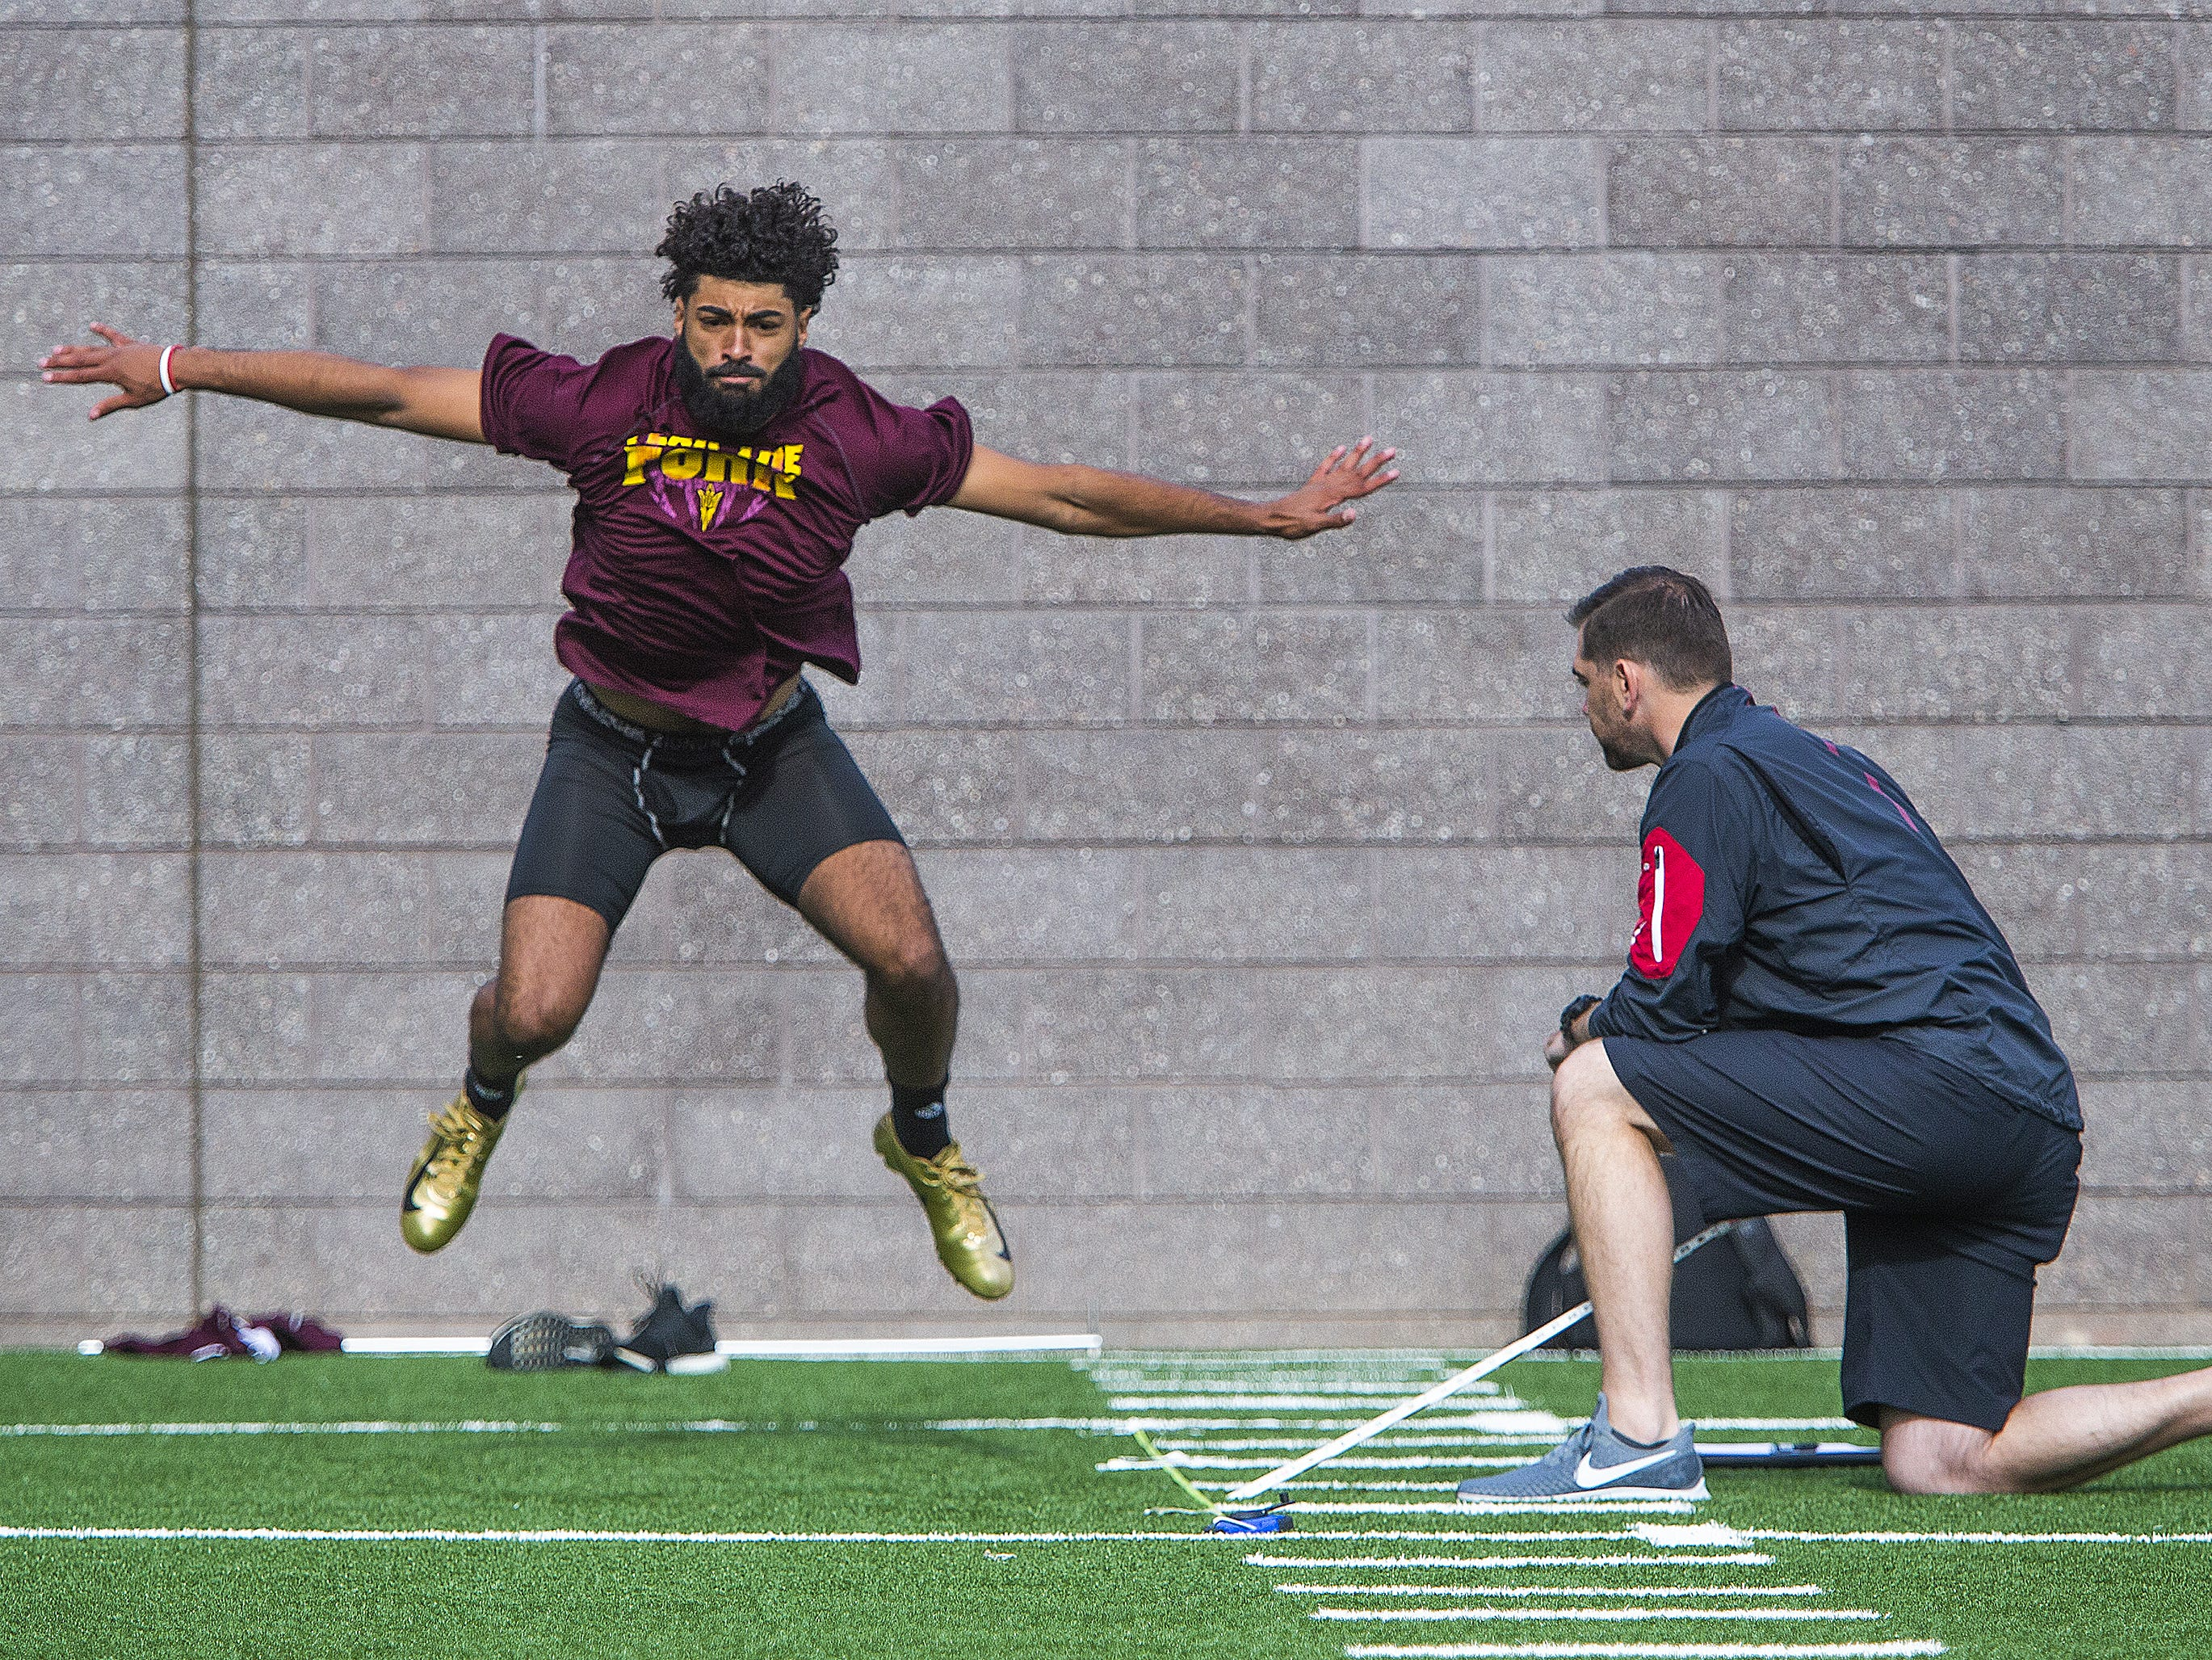 Former Arizona State University quarterback Manny Wilkins, Jr., does the standing broad jump at the 2019 Football Pro Day held on campus, Wednesday, March 27, 2019.